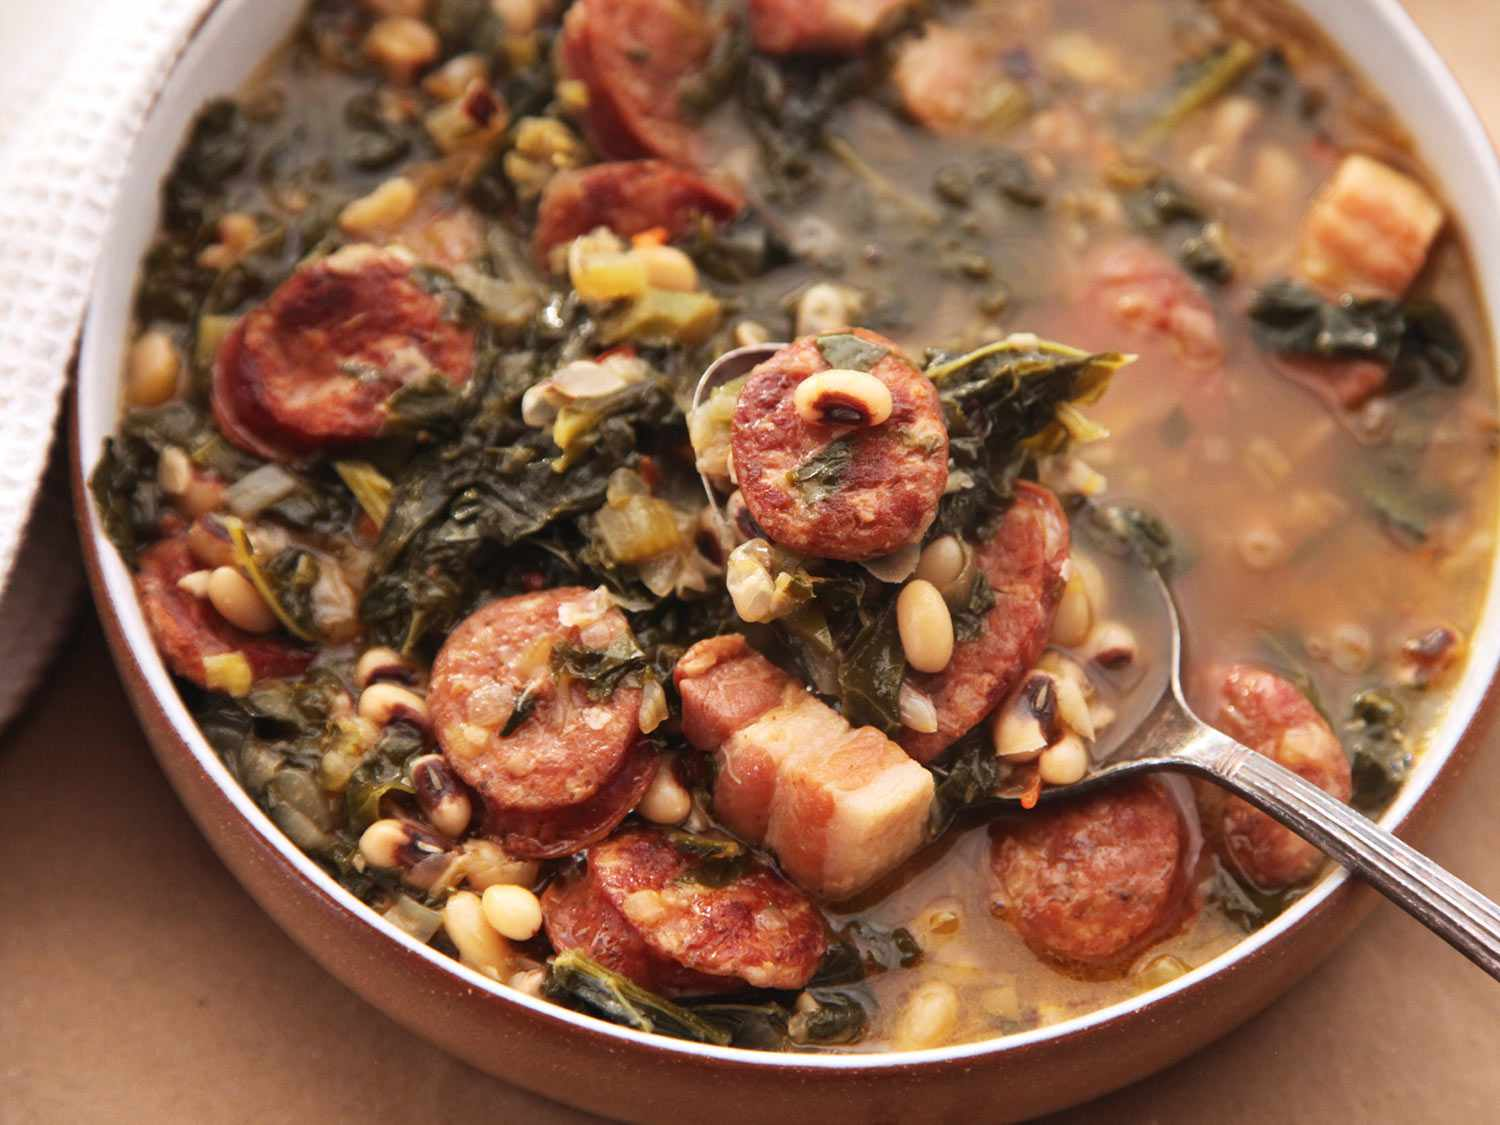 Hearty One-Pot Black-Eyed Pea Stew With Kale and Andouille, with a spoon holding some stew above the bowl.